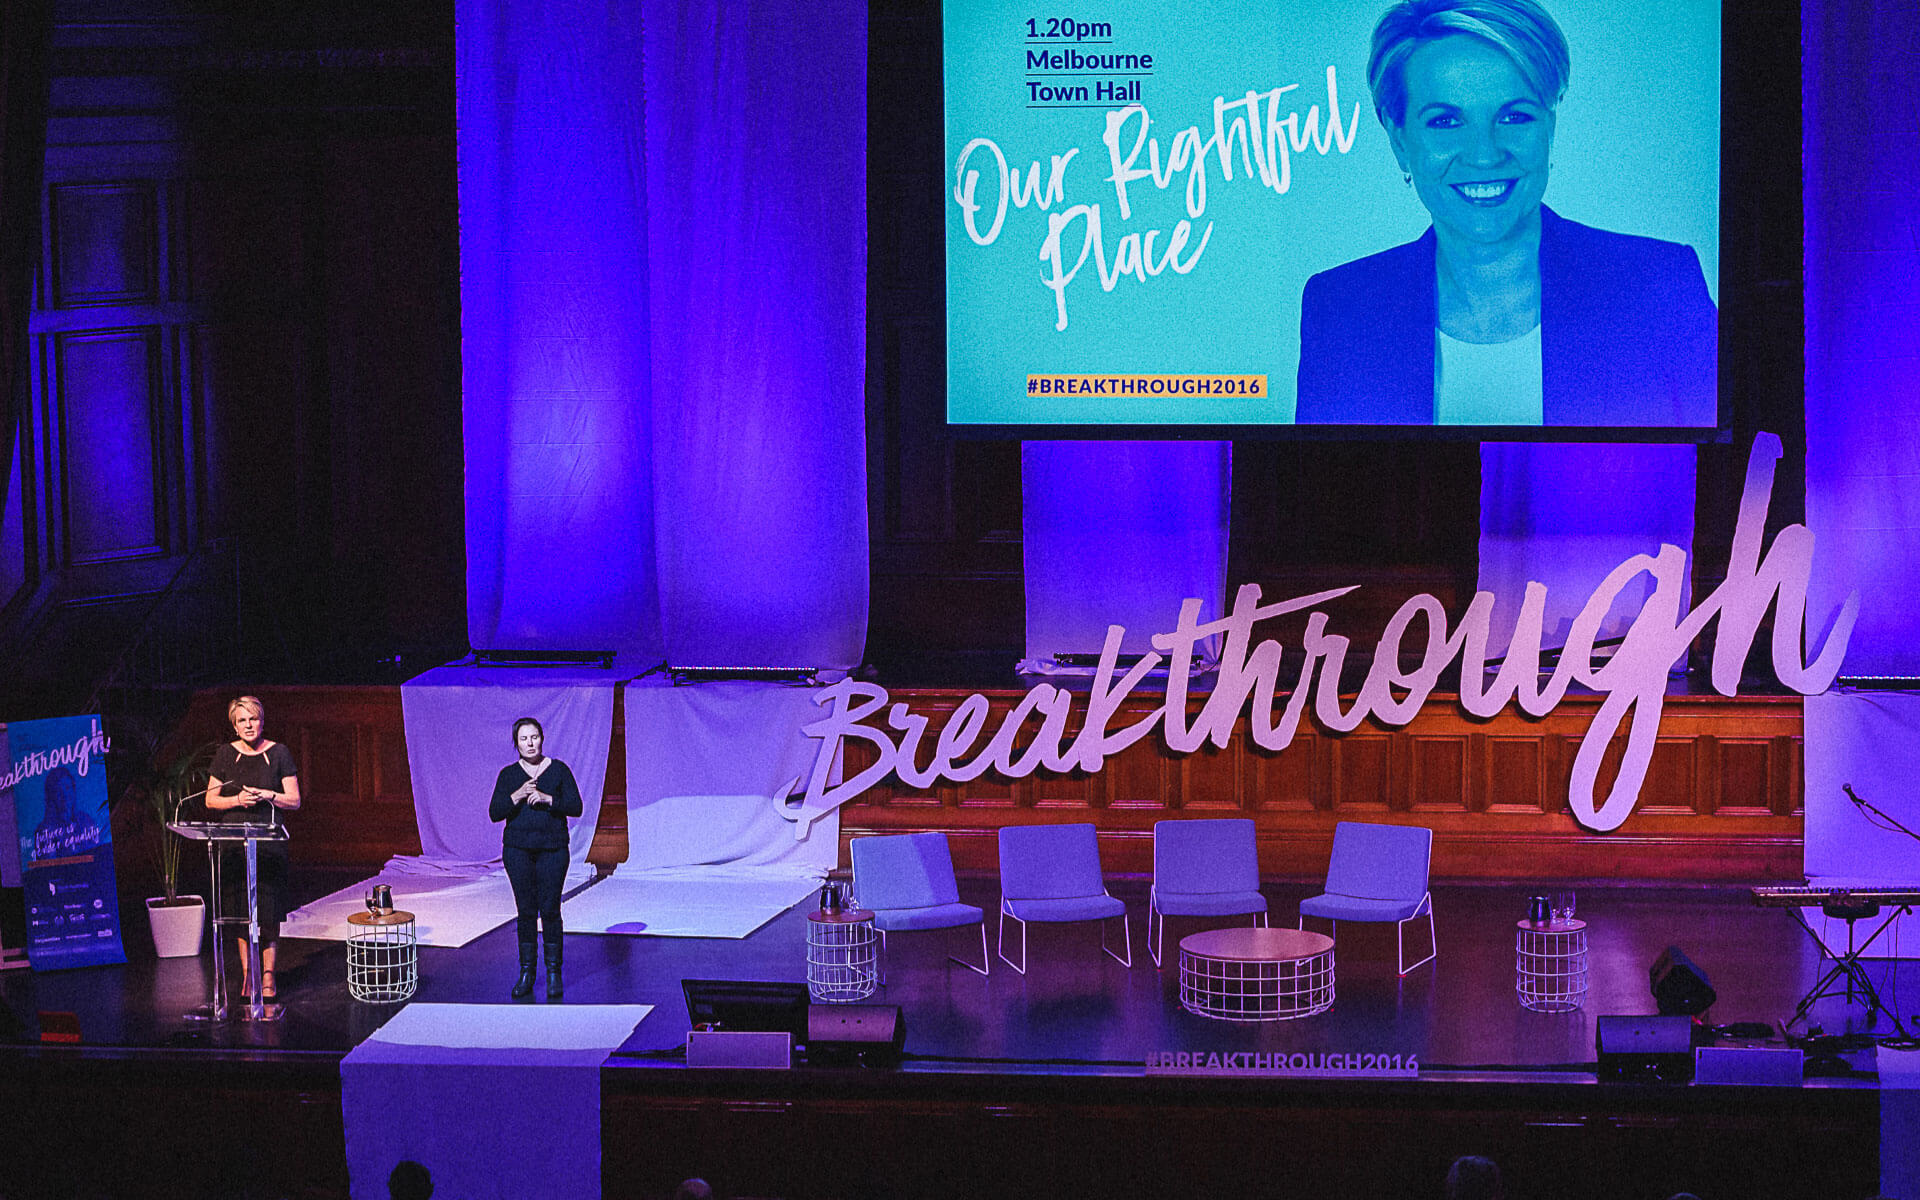 Breakthrough Conference, Our Rightful Place, Tanya Plibersek